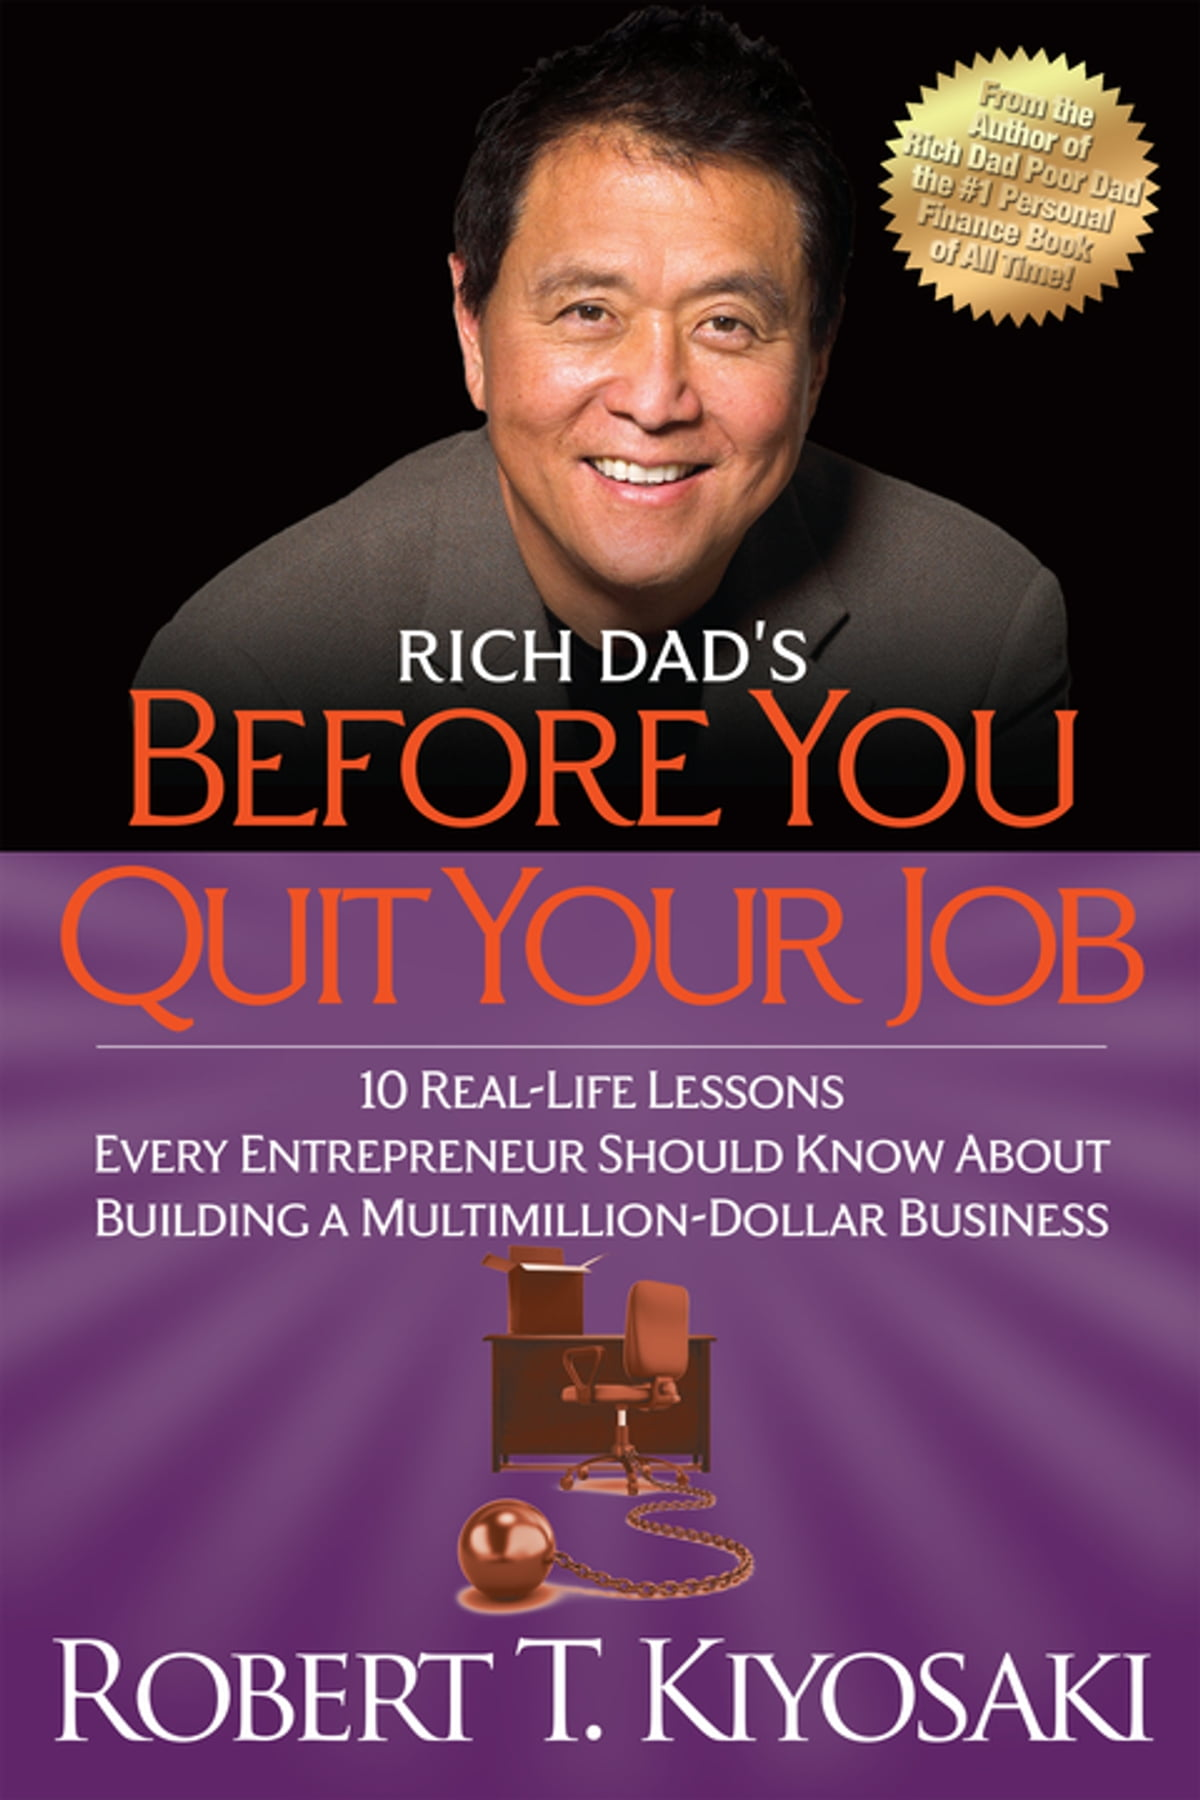 Rich Dad's Before You Quit Your Job eBook by Robert T. Kiyosaki ...